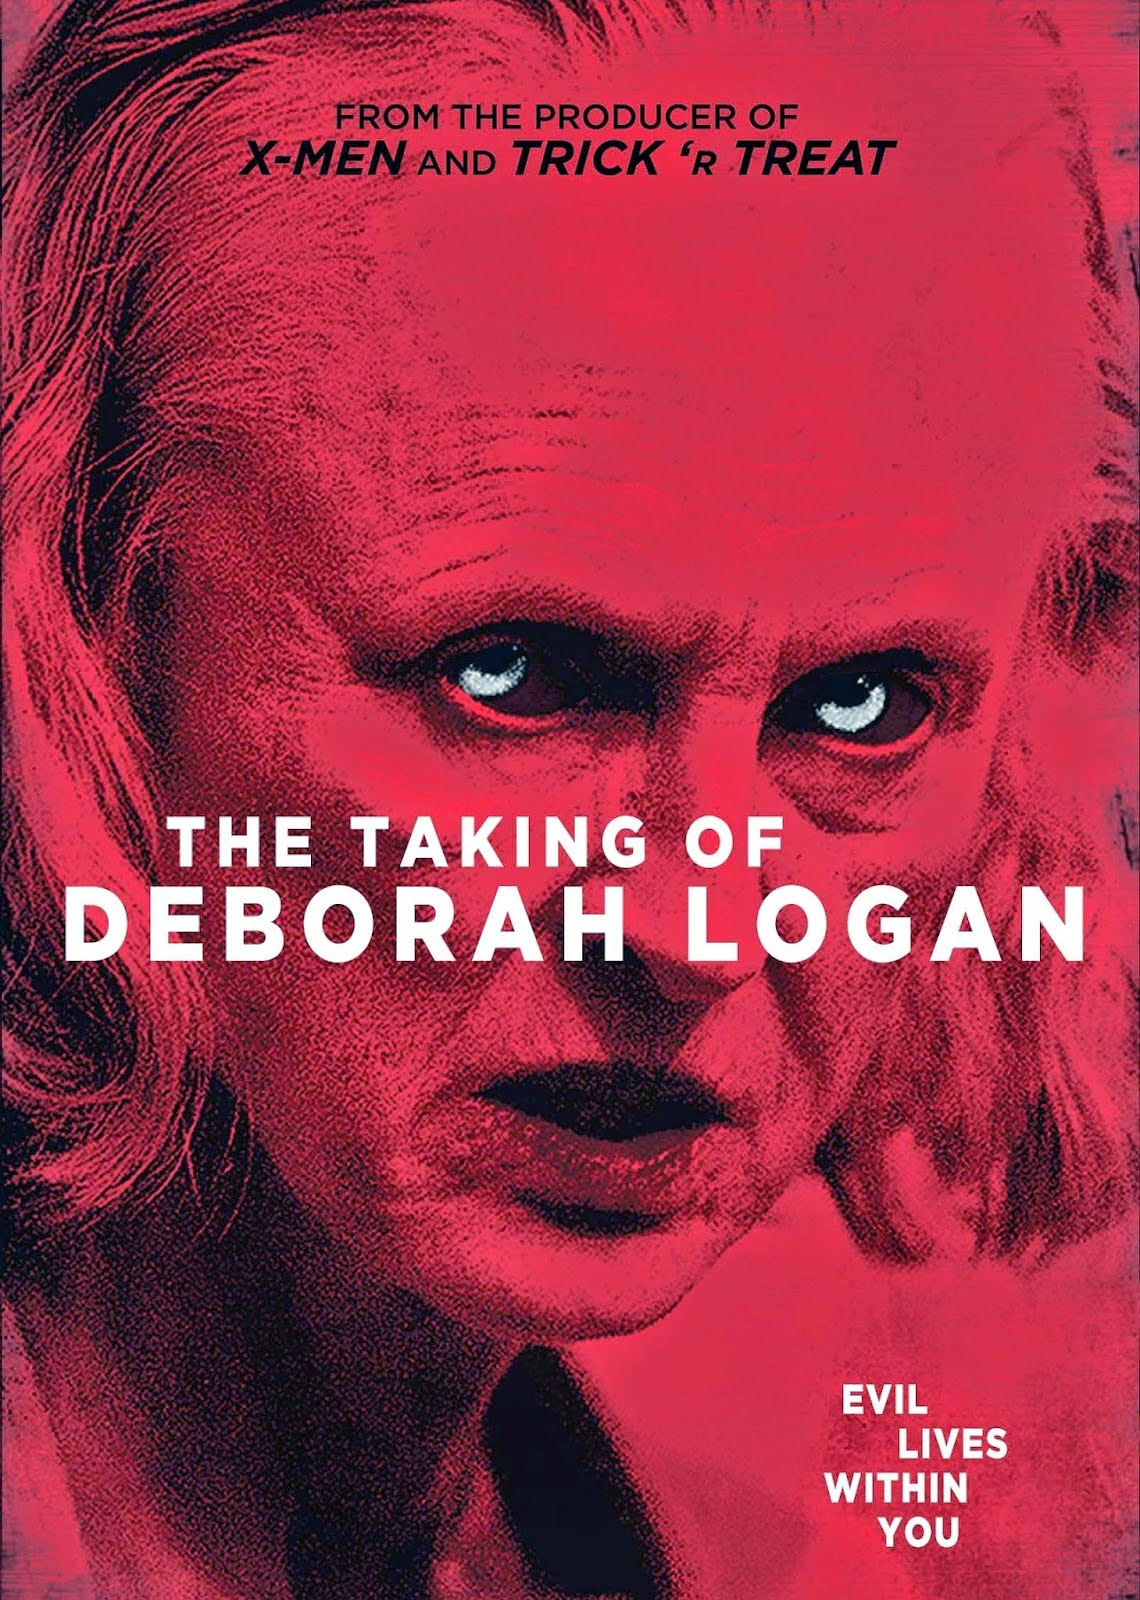 The Taking of Deborah Logan: Poster | A Constantly Racing Mind